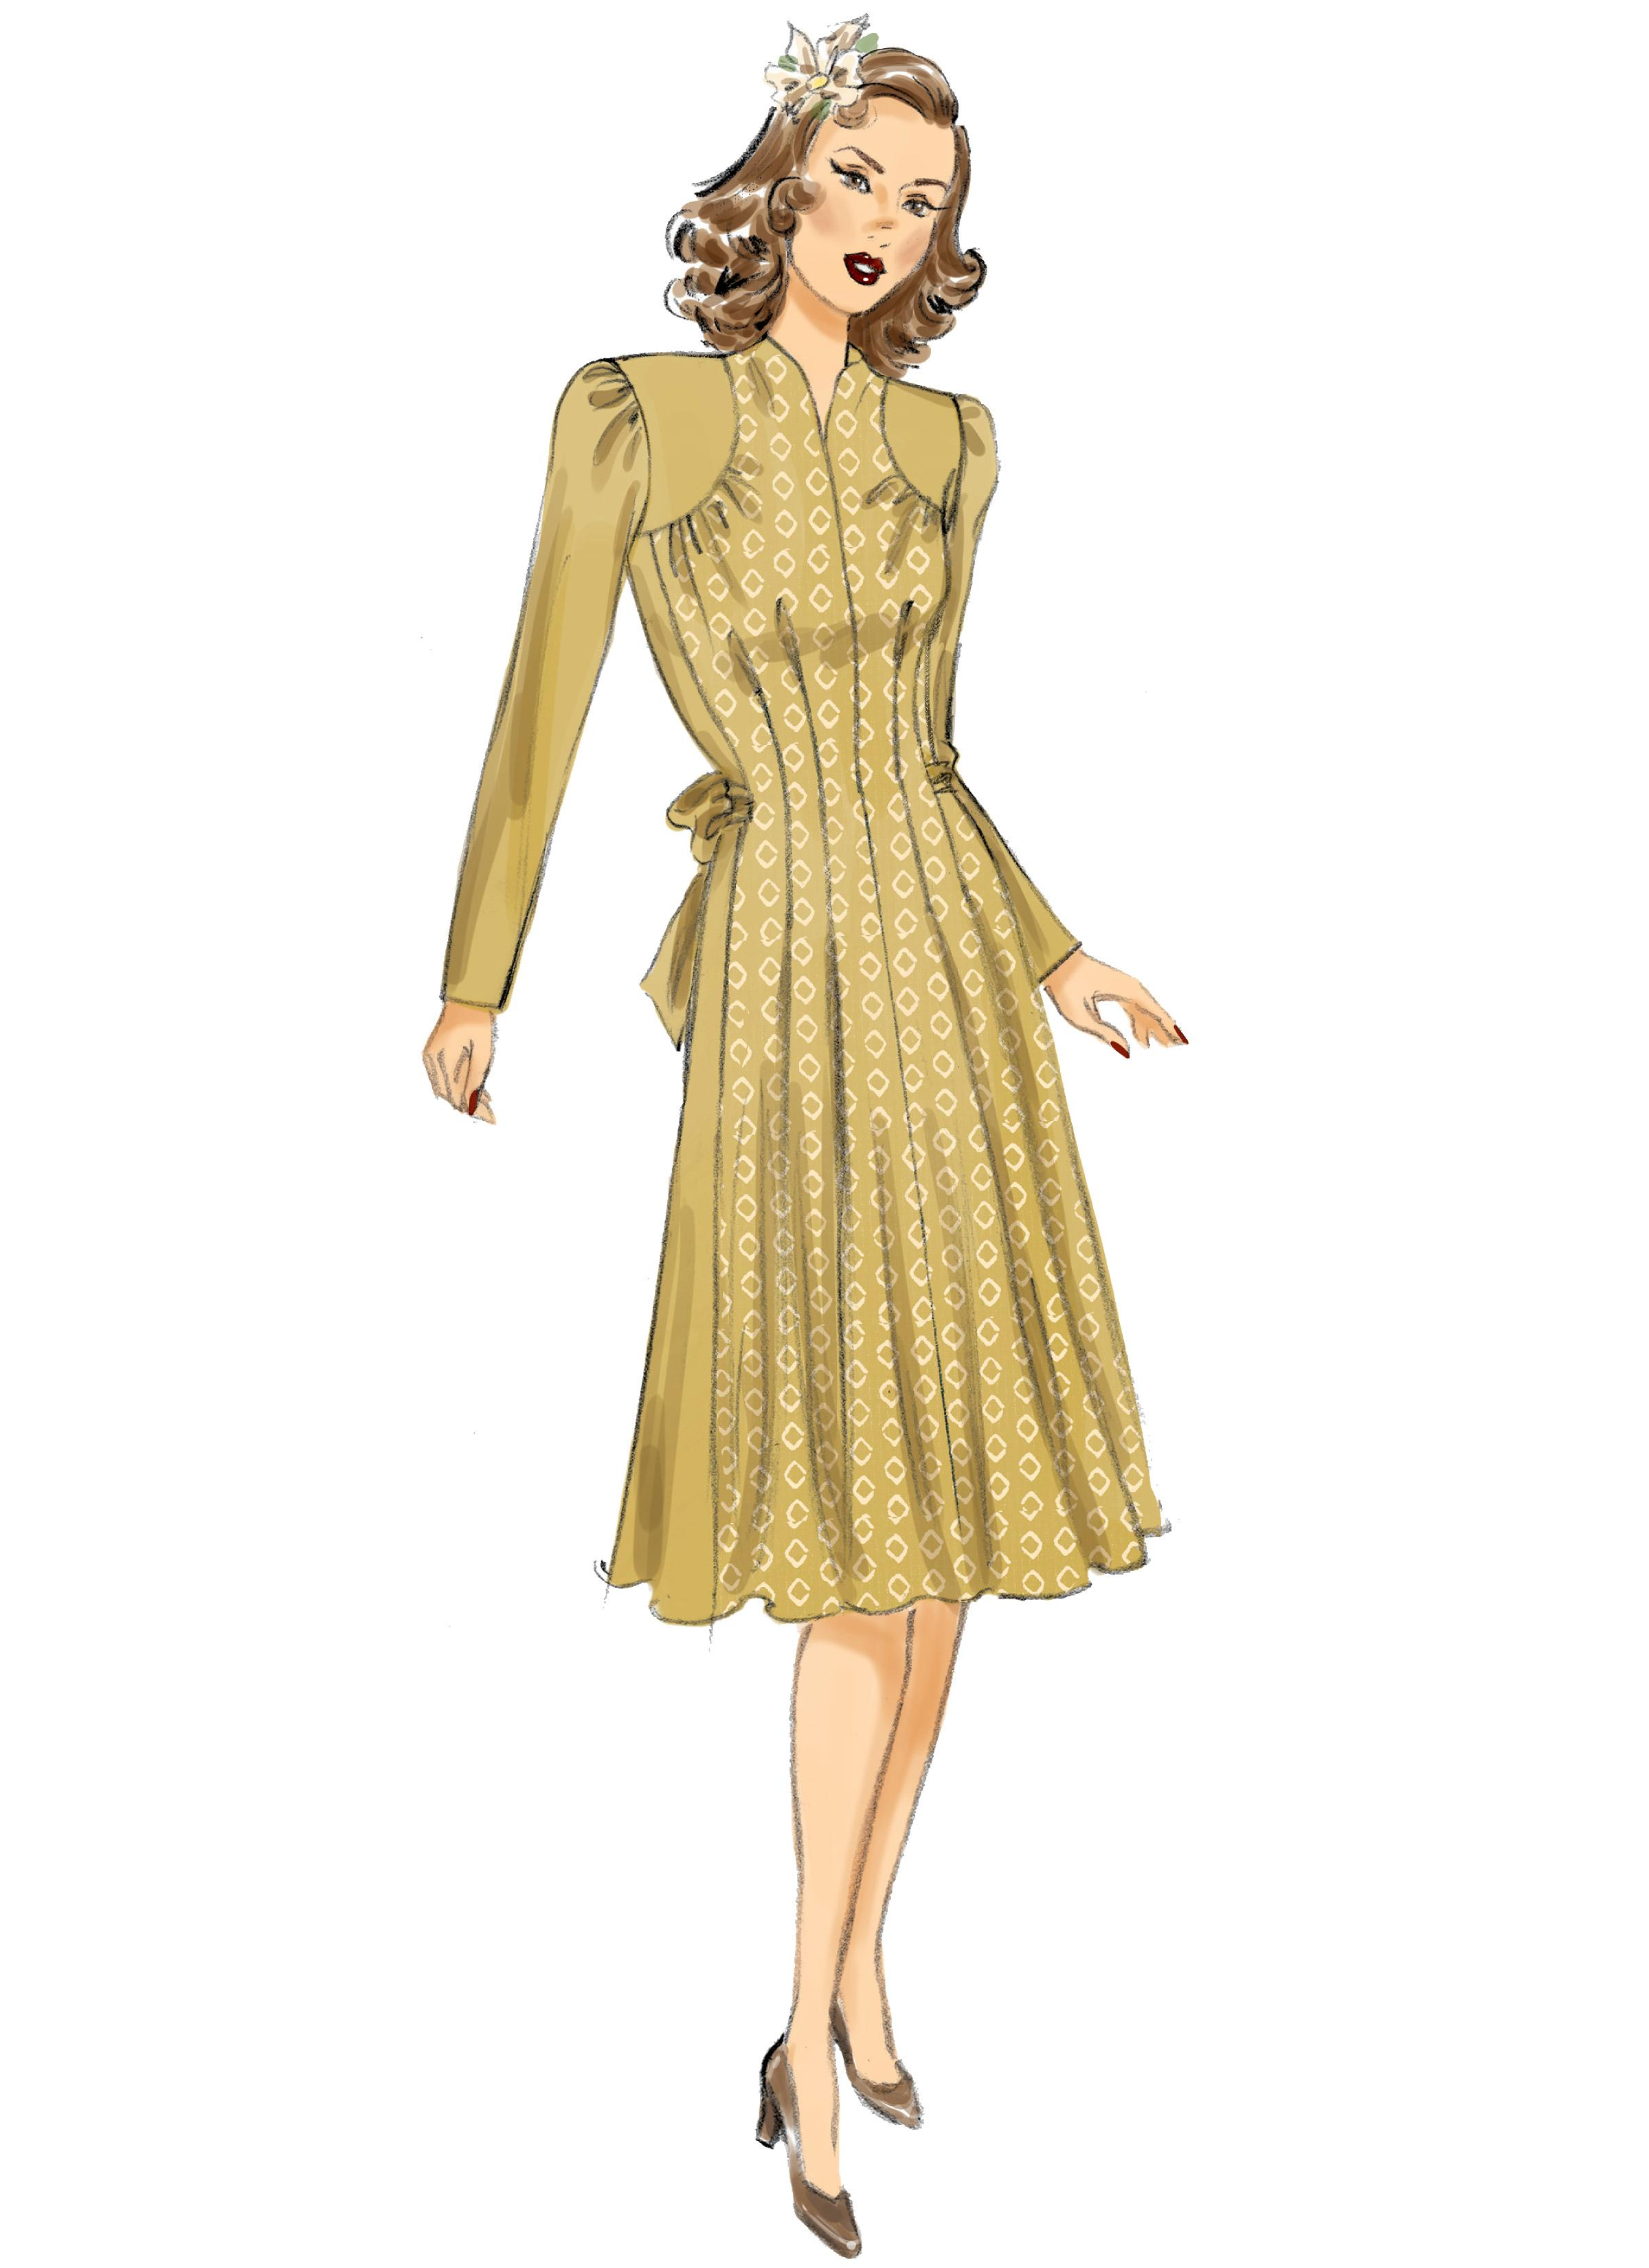 Butterick B6485 Misses' Dresses with Shoulder and Bust Detail, Waist Tie, and Sleeve Variations